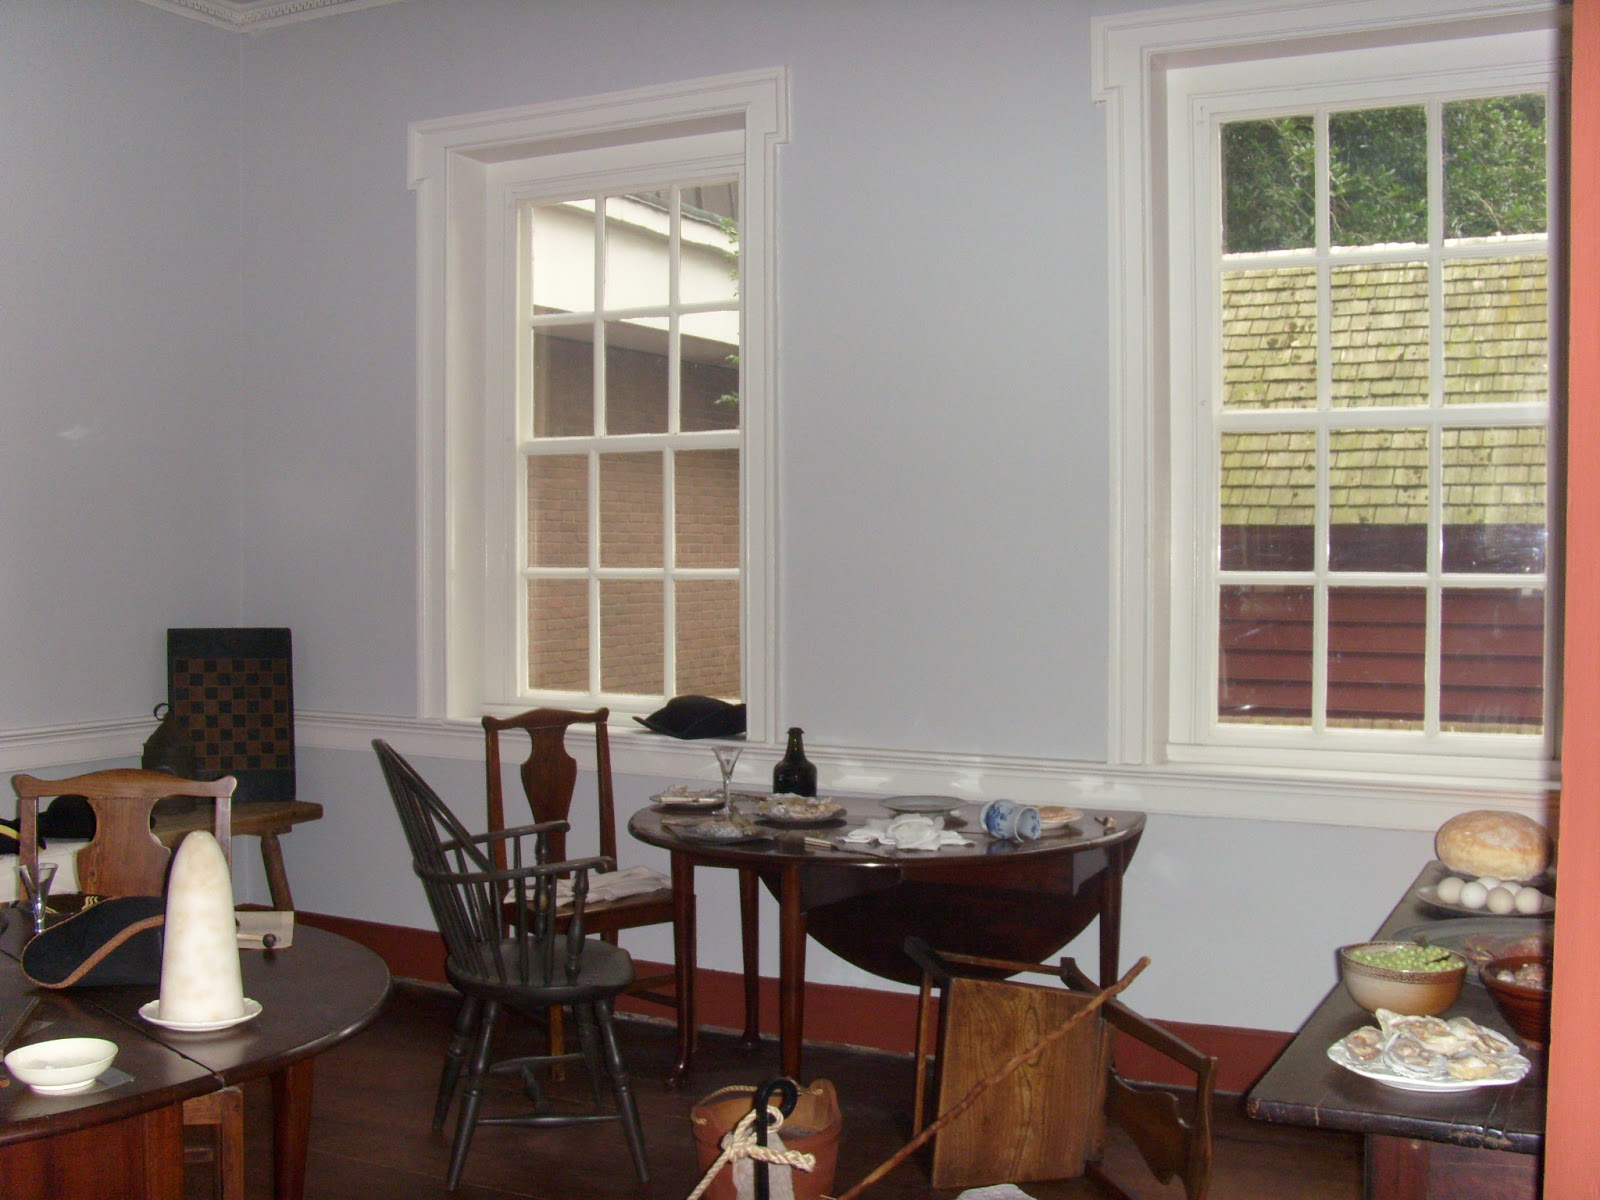 Main tavern room at Gadsby's Tavern in Old Town Alexandria